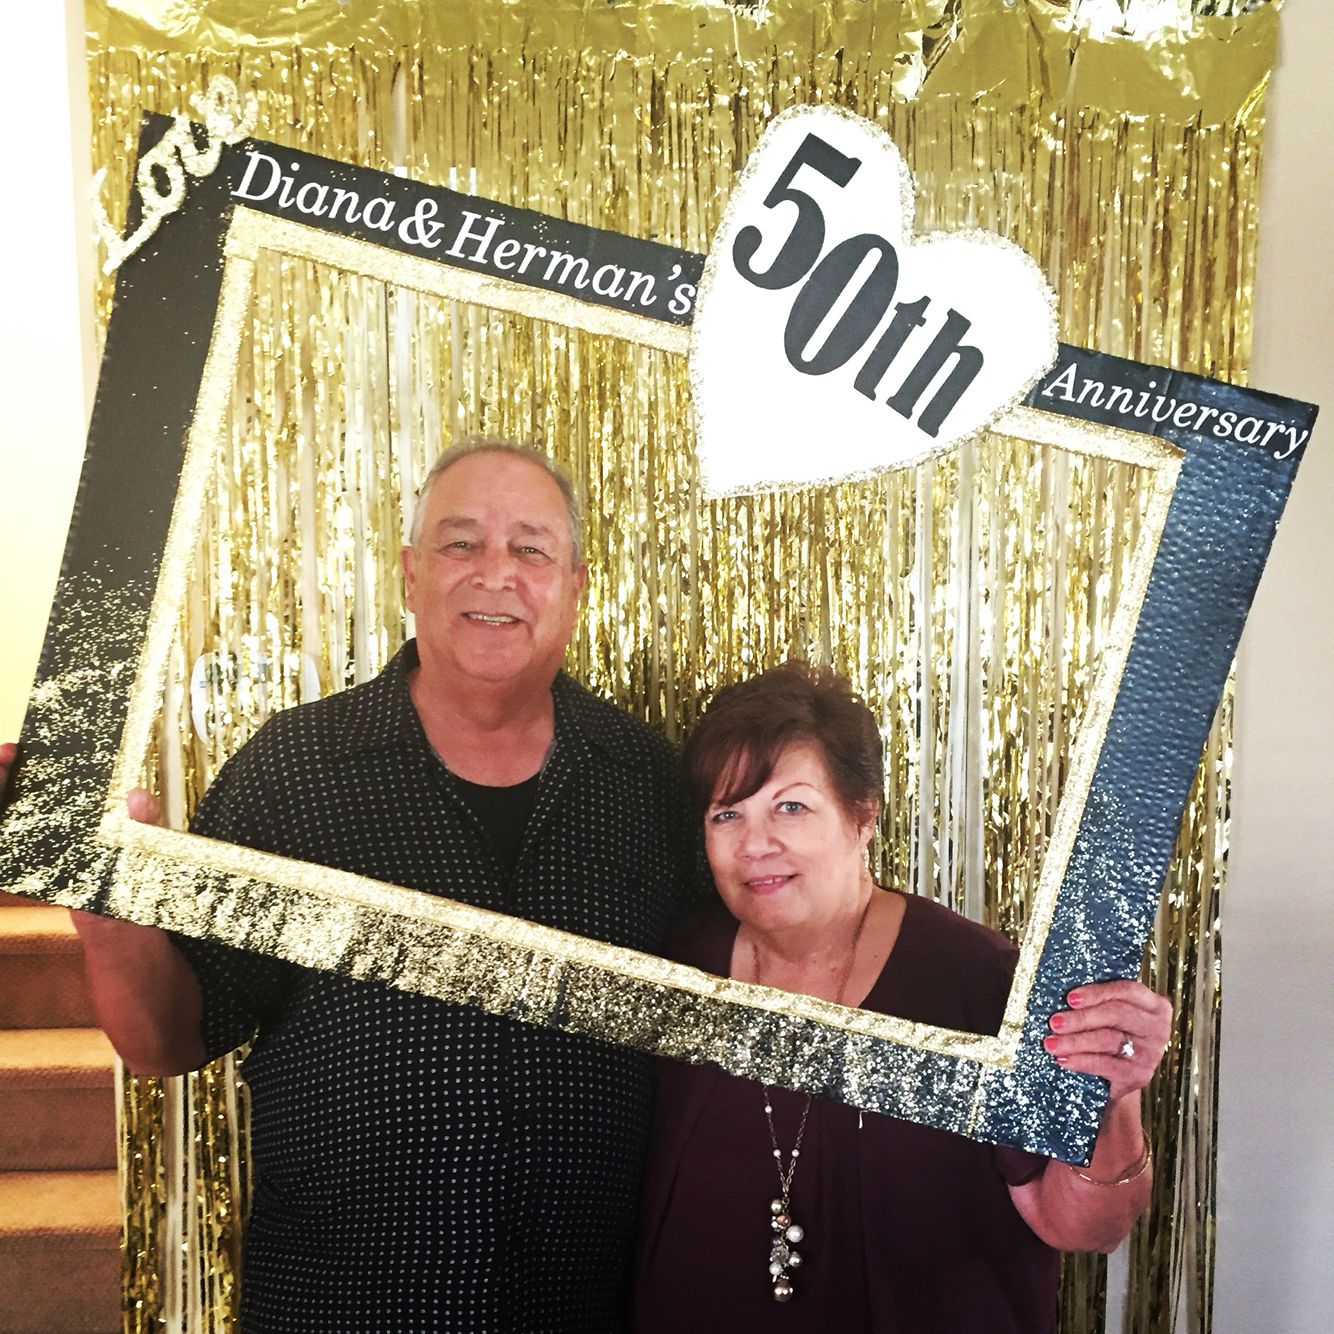 50th Anniversary Photo Booth Fun DIY Frame